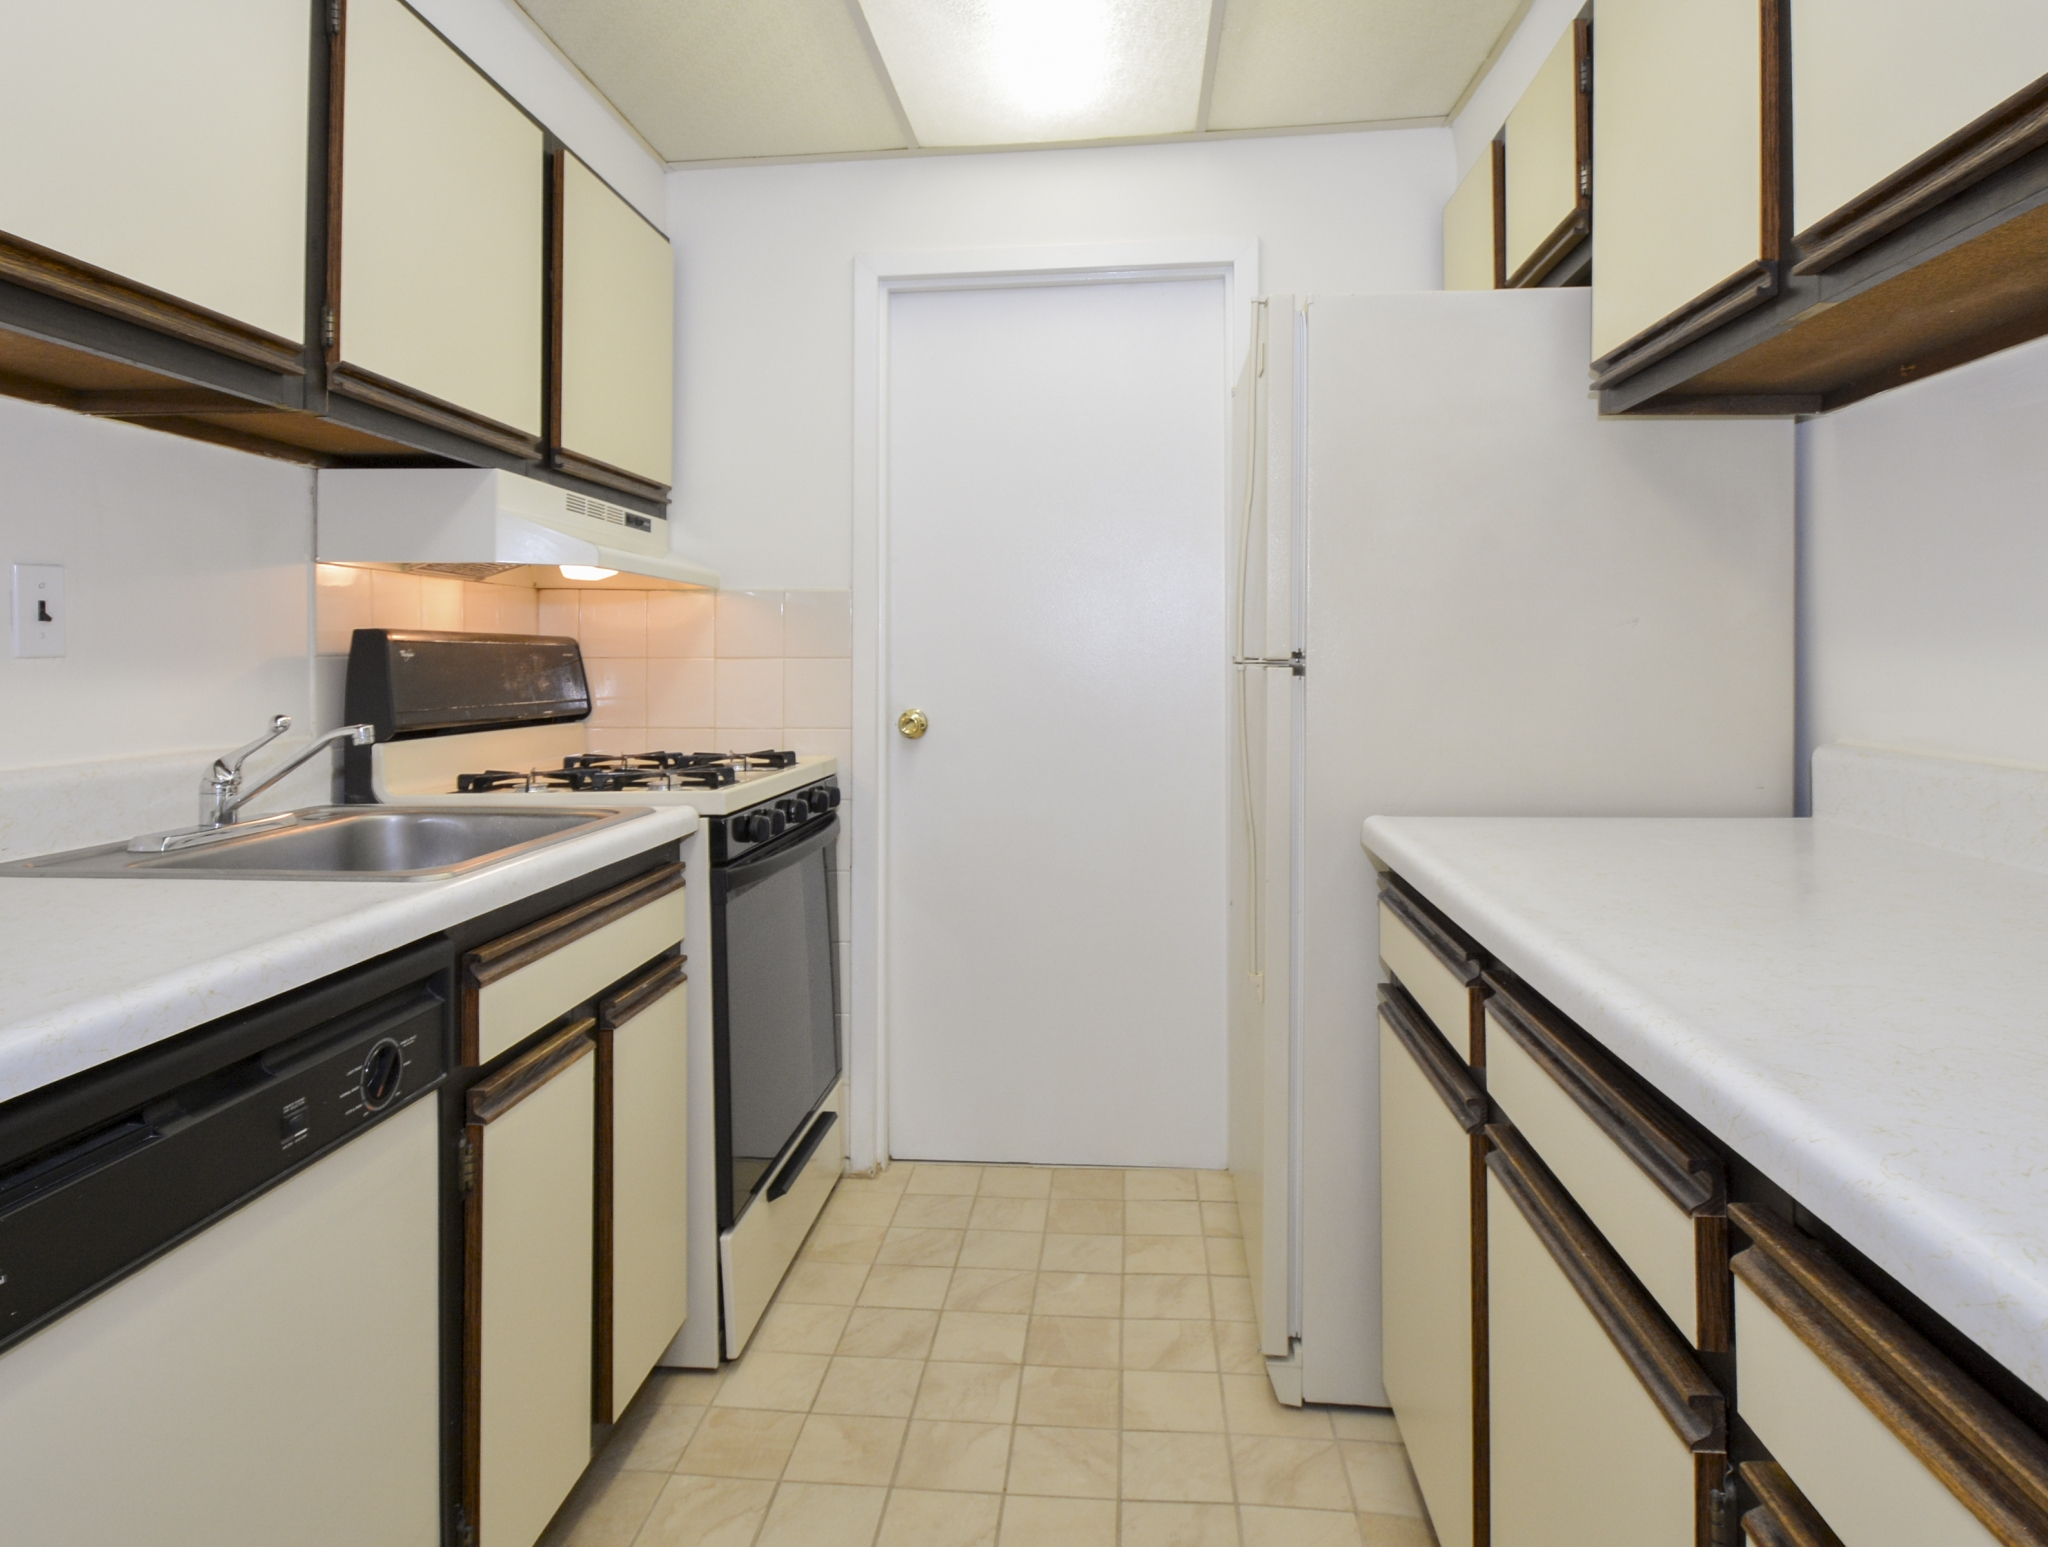 Gladstone Towers Sample Kitchen with Beige and Brown Countertops | Apartments in Lansdowne PA